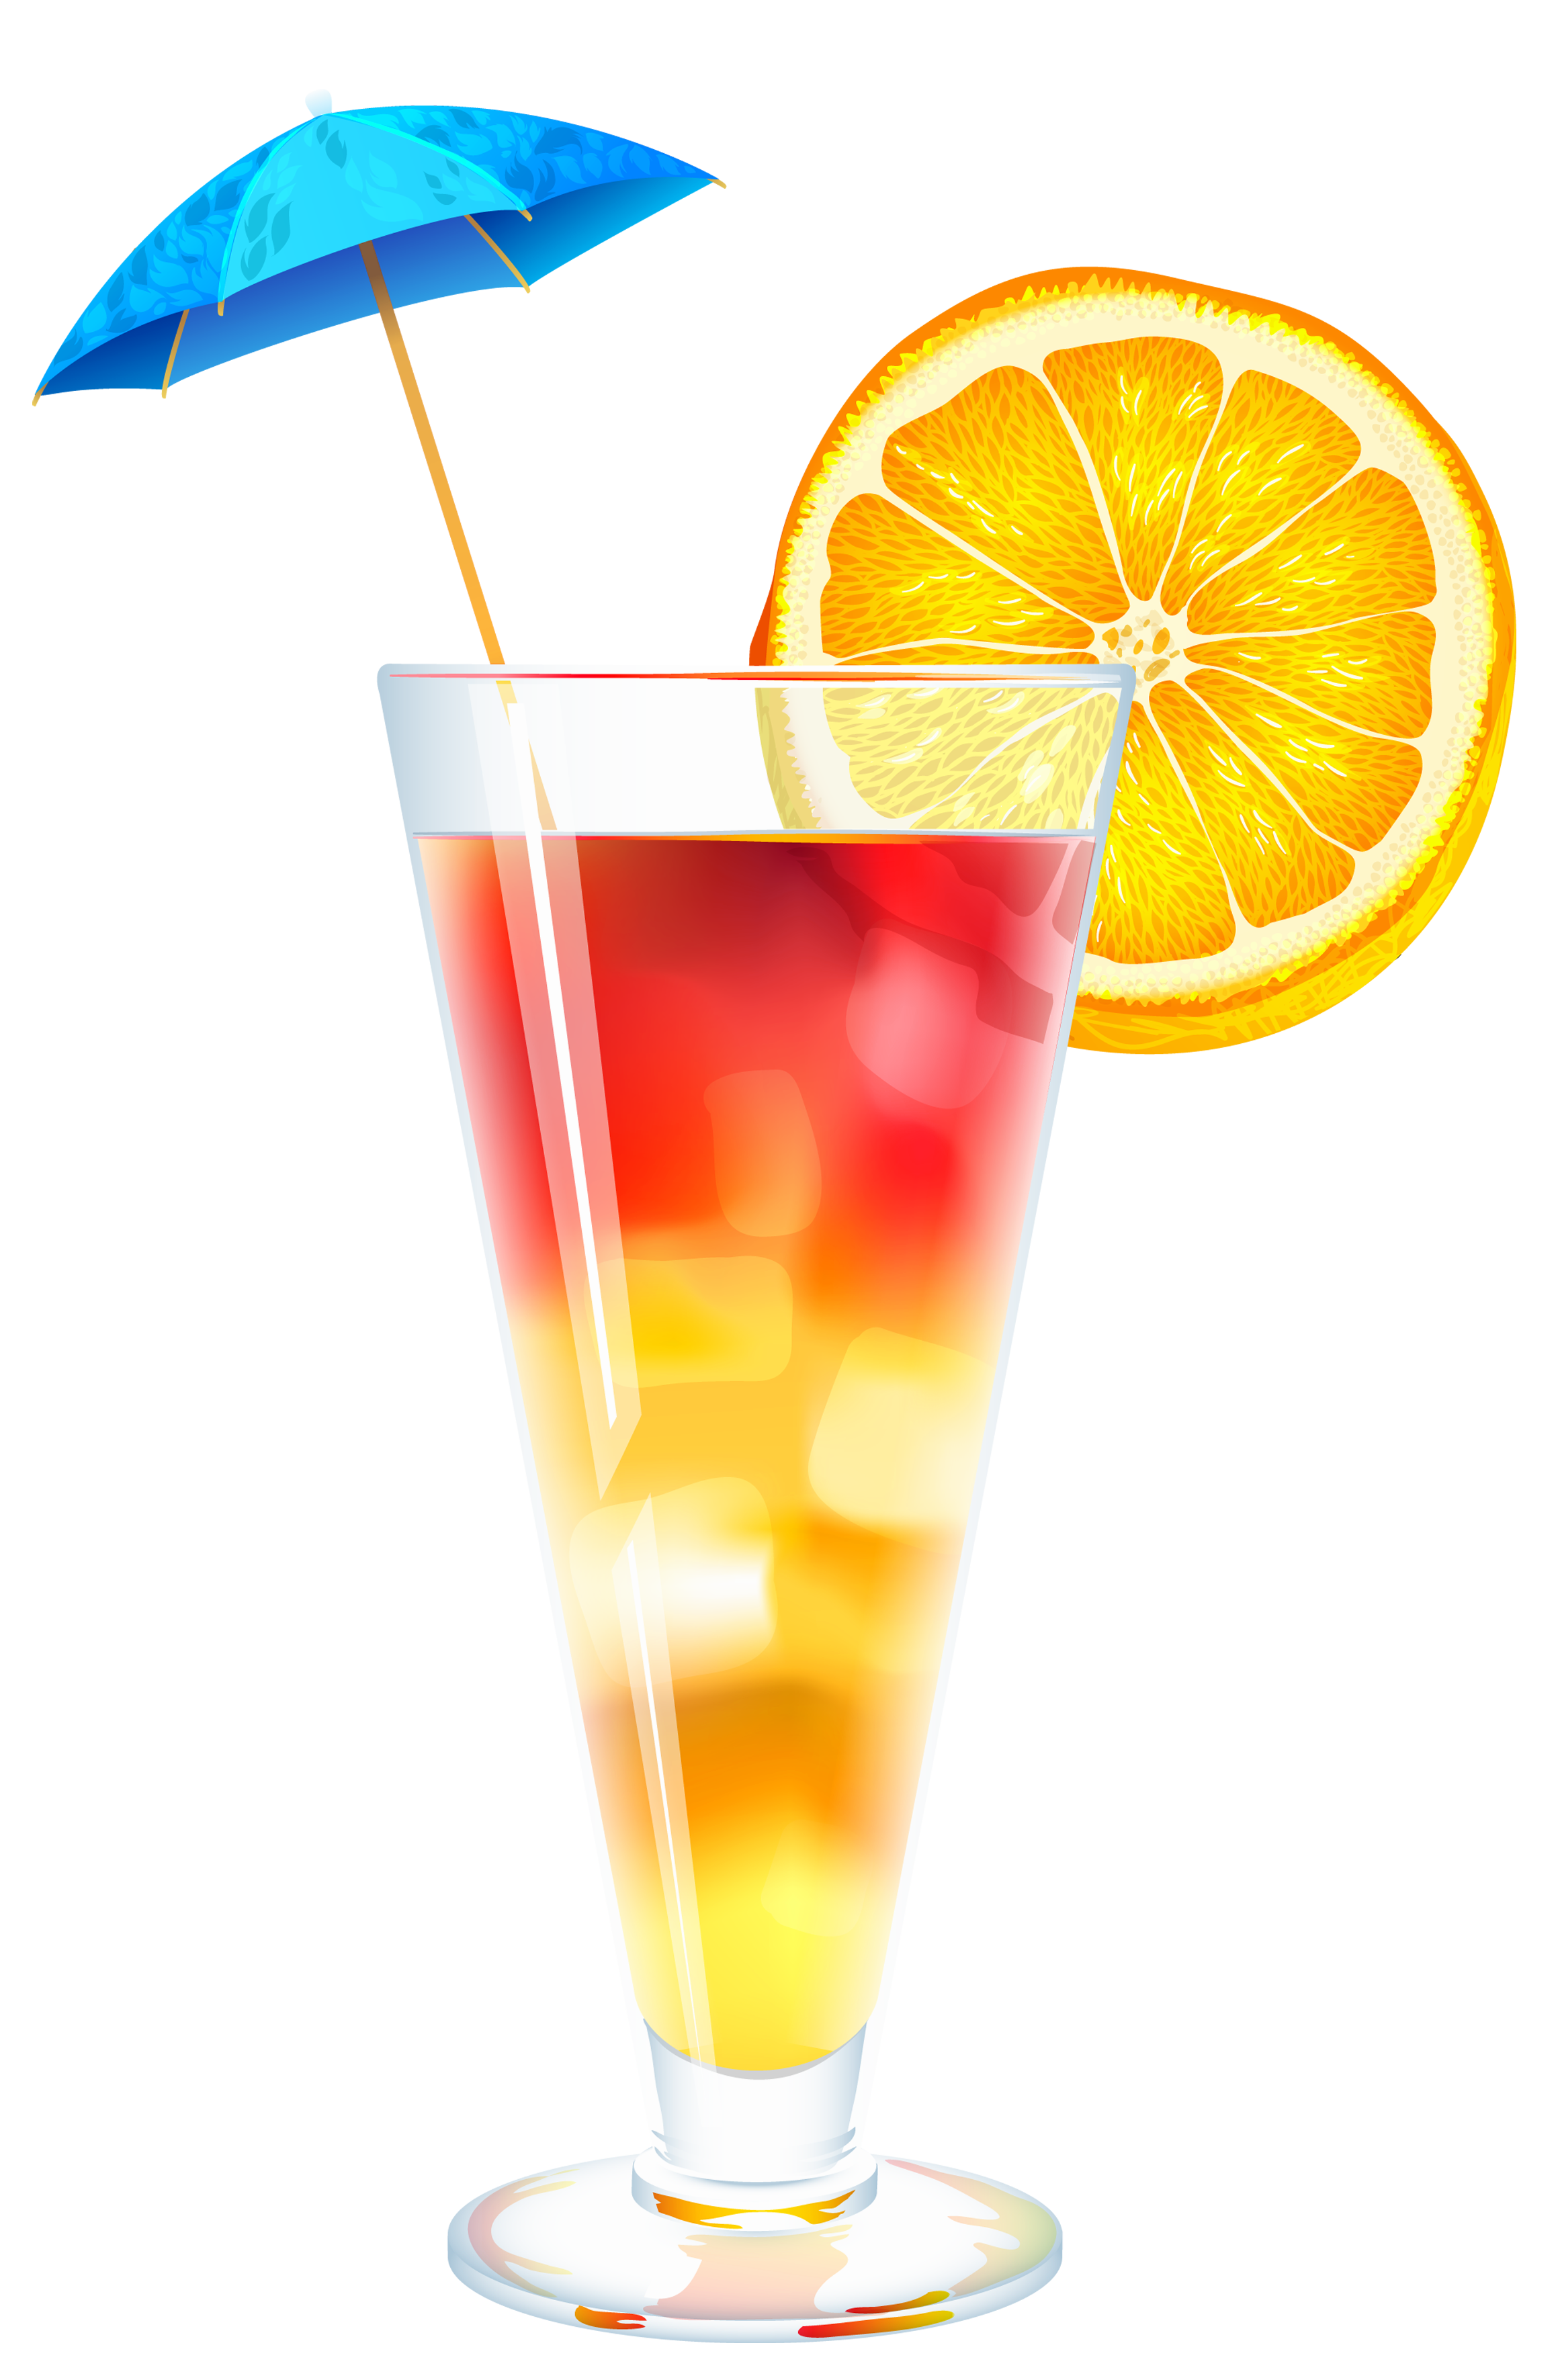 Summer Cocktail PNG Clipart Image | Clip Art Drinks, Ice ...